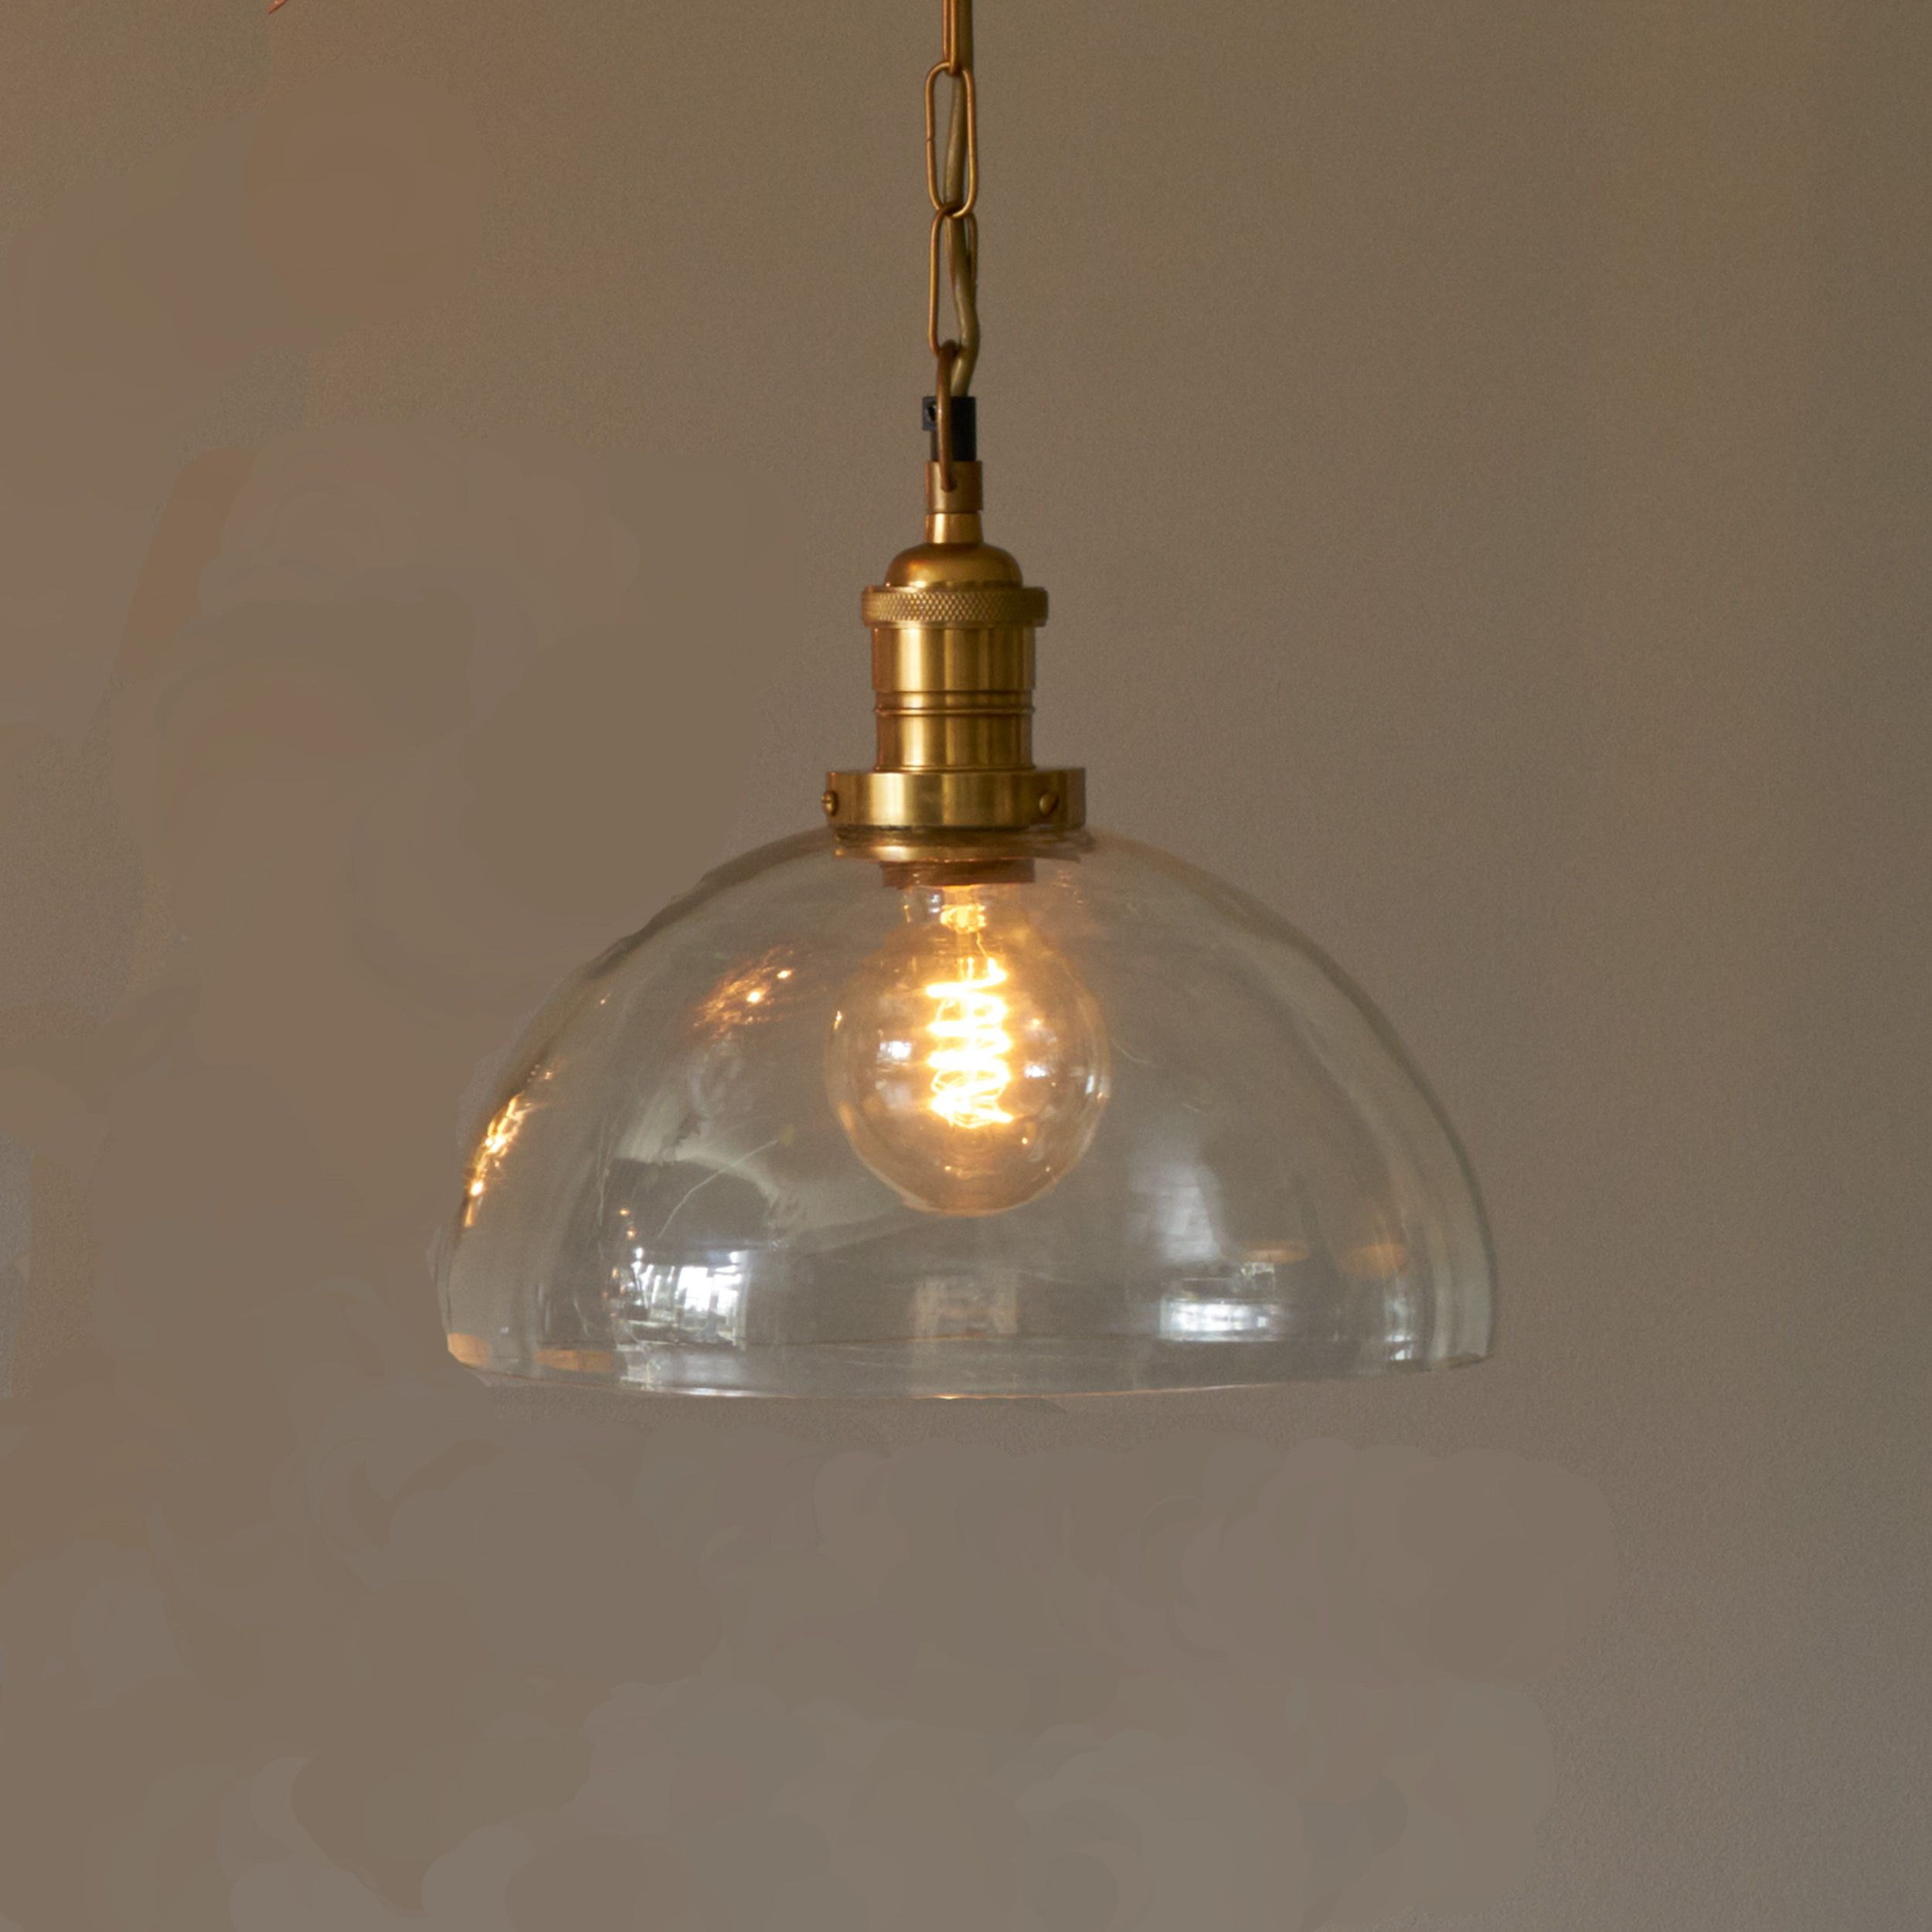 Chilgrove Antique Brass Glass Dome Ceiling Pendant At